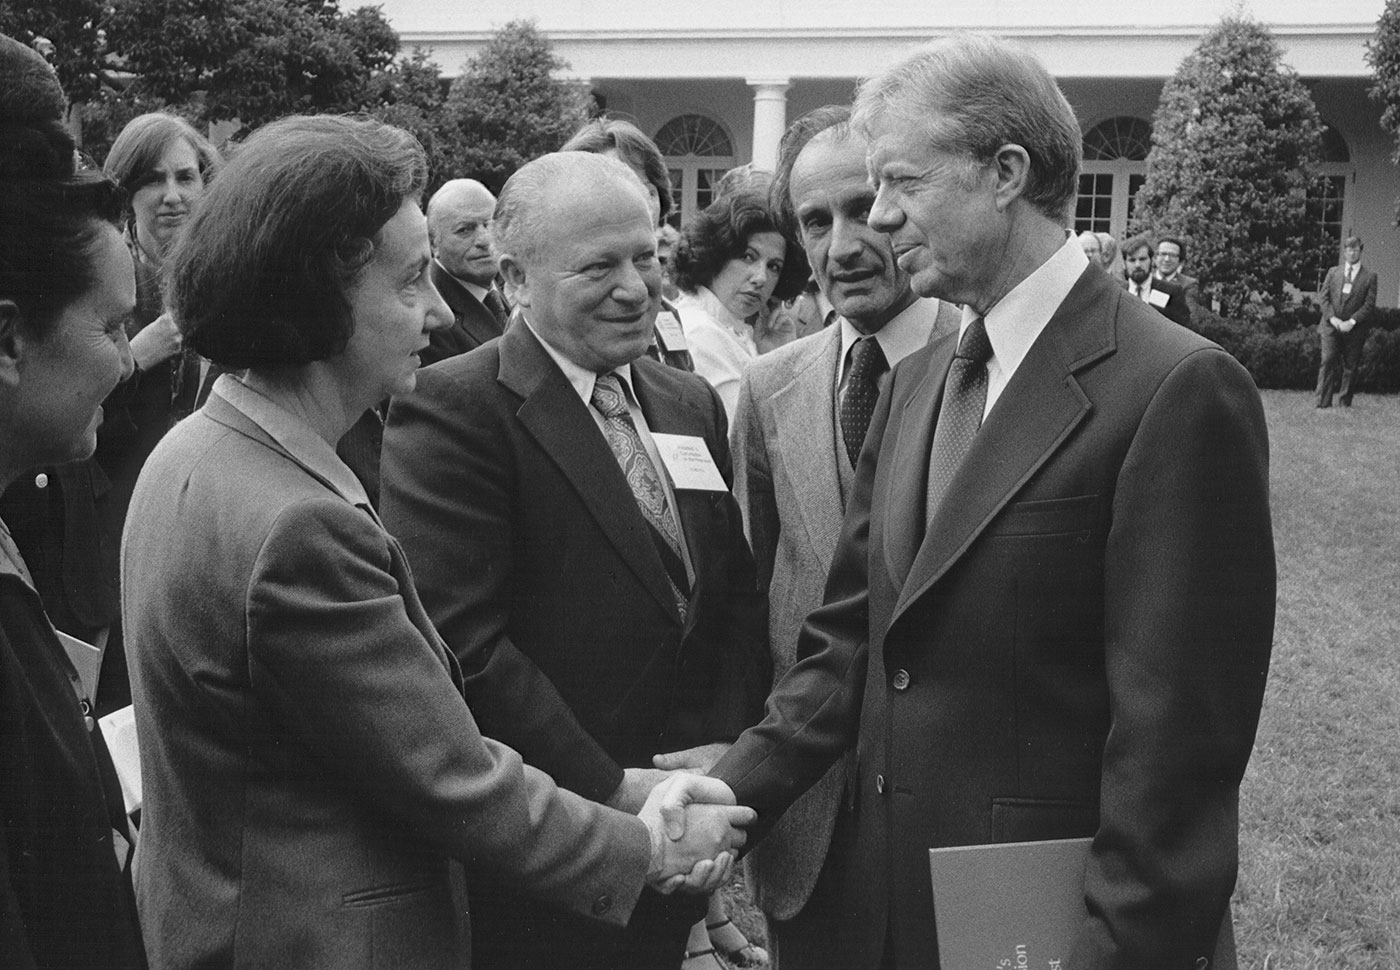 President Jimmy Carter shakes the hand of Vladka Meed during a ceremony in the White House Rose Garden, during which Elie Wiesel presented the report of the US Holocaust Commission.